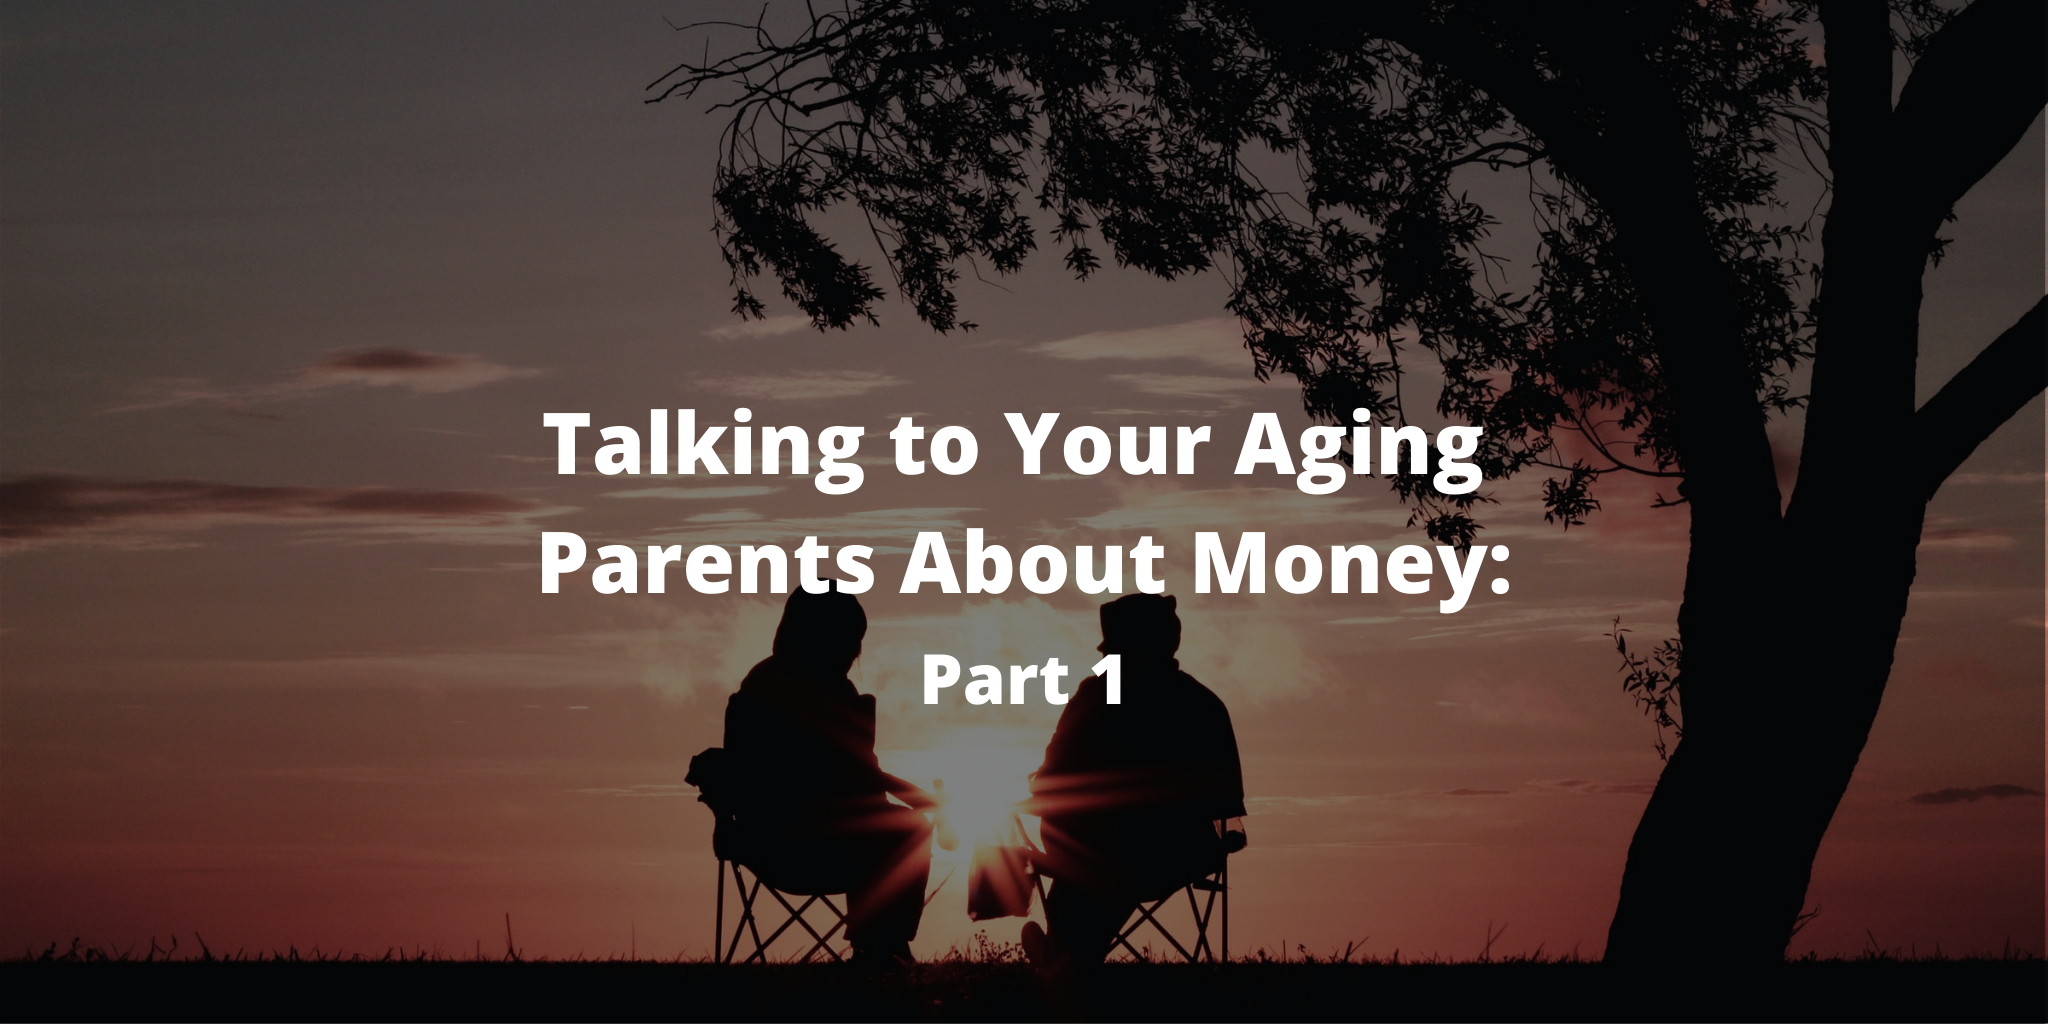 Talking to Your Aging Parents About Money: Part 1